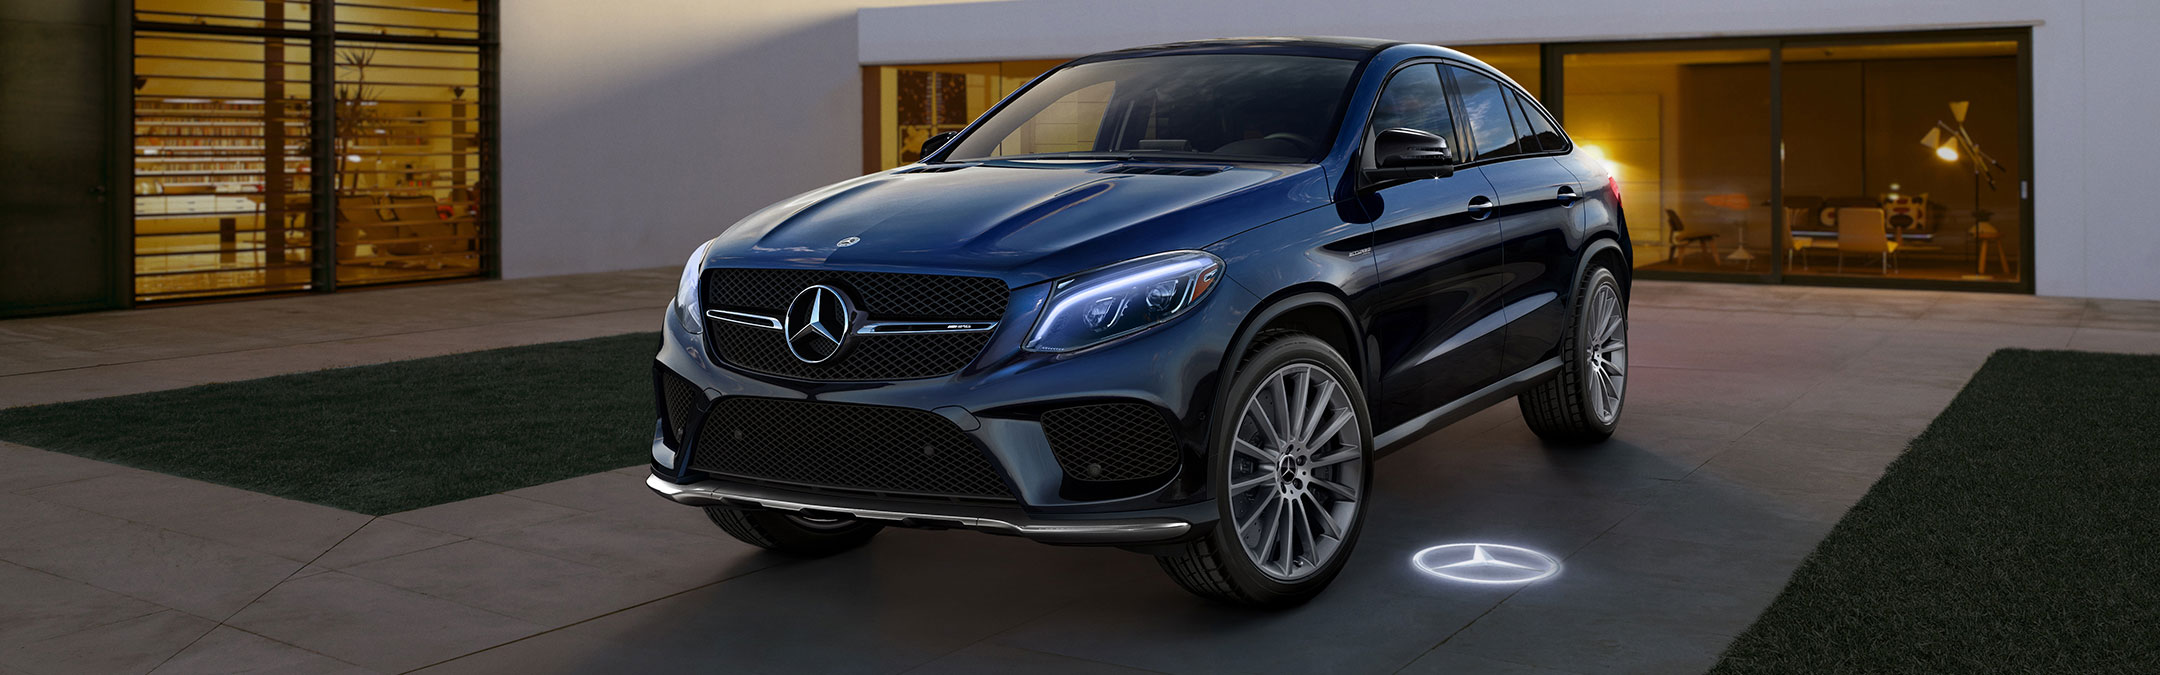 2018 Mercedes-AMG GLE Coupe Design